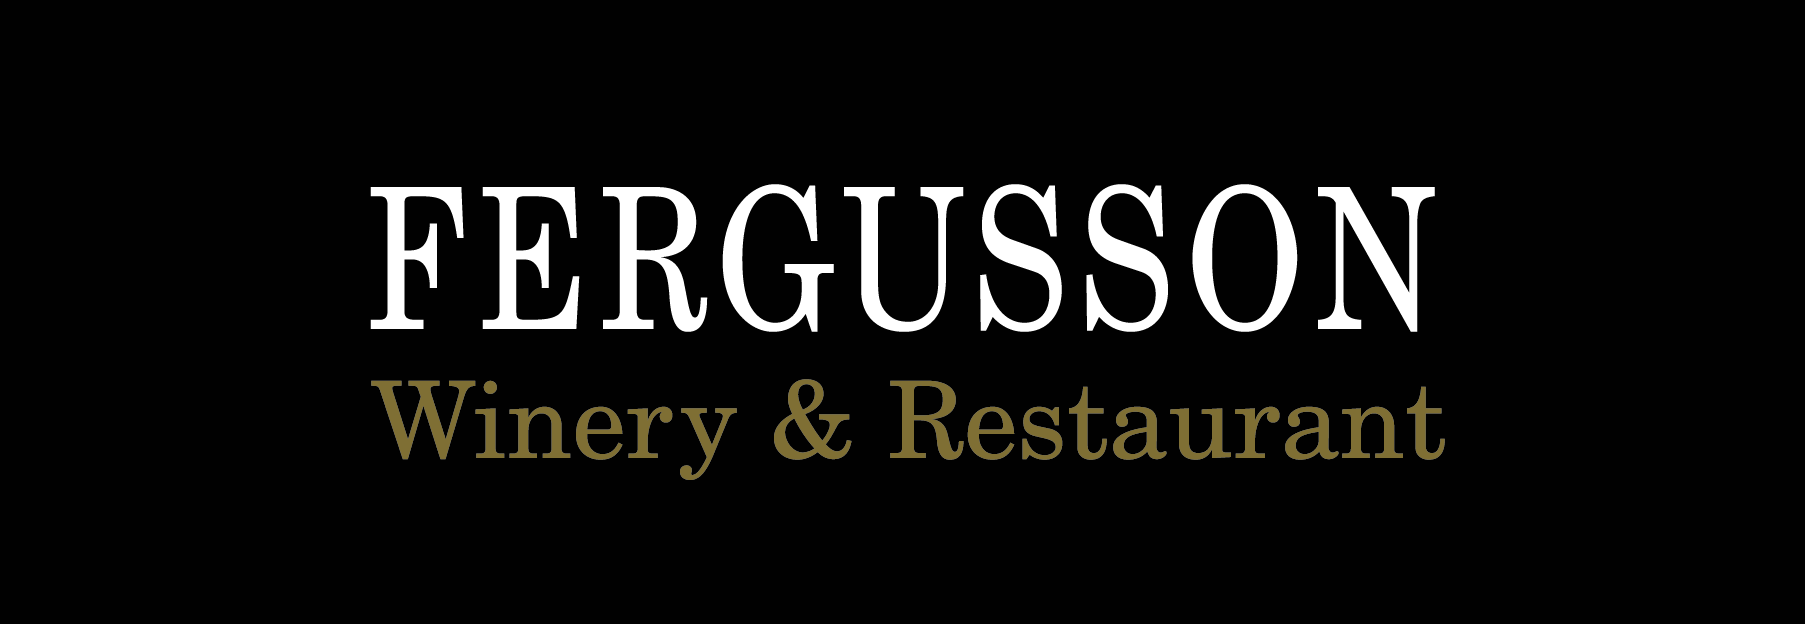 Fergusson Winery and Restaurant logo